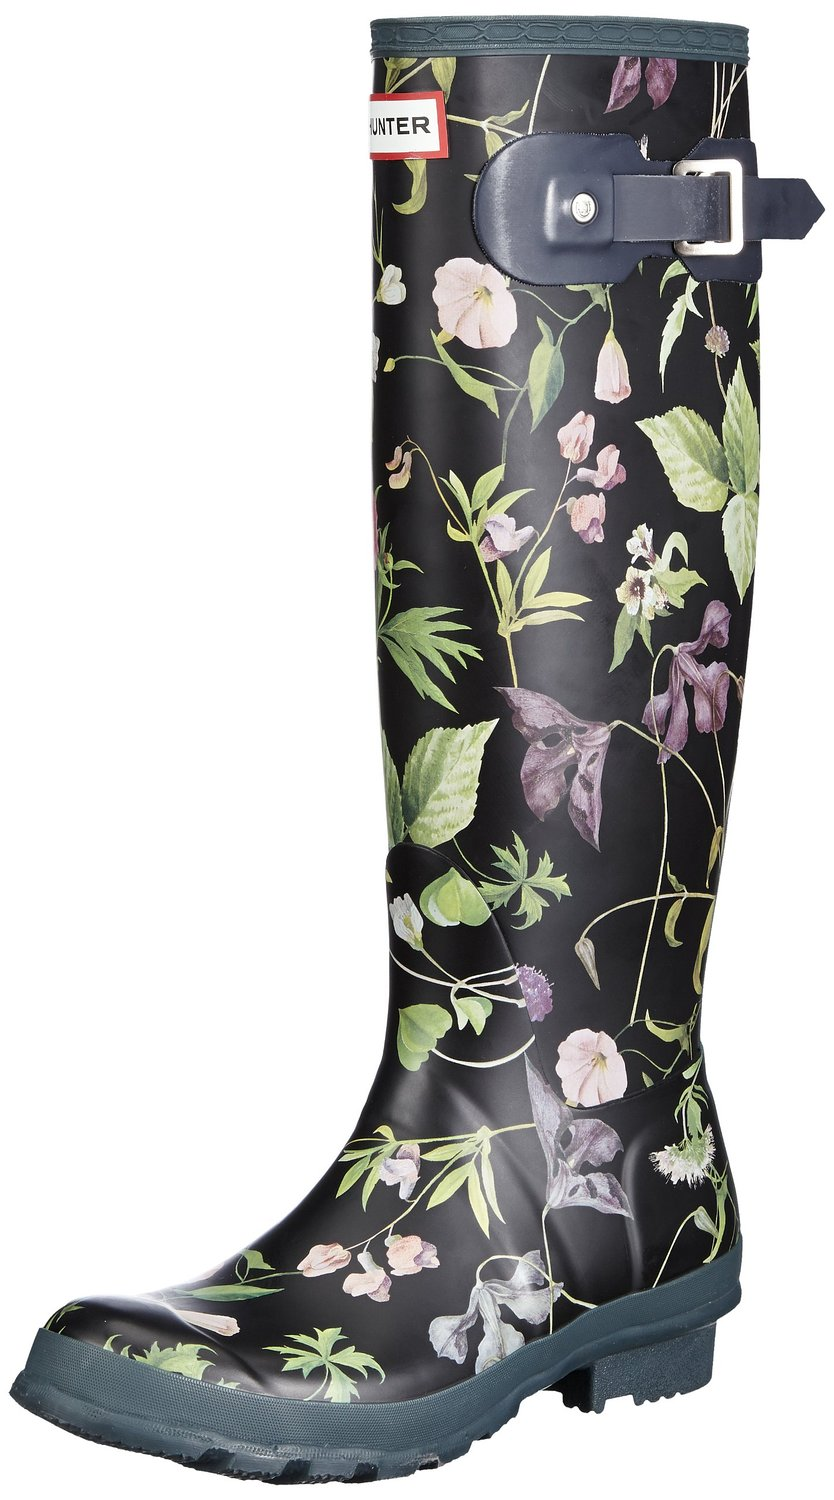 Adult rhs tall wellington boot: amazon.co.uk: shoes & bags